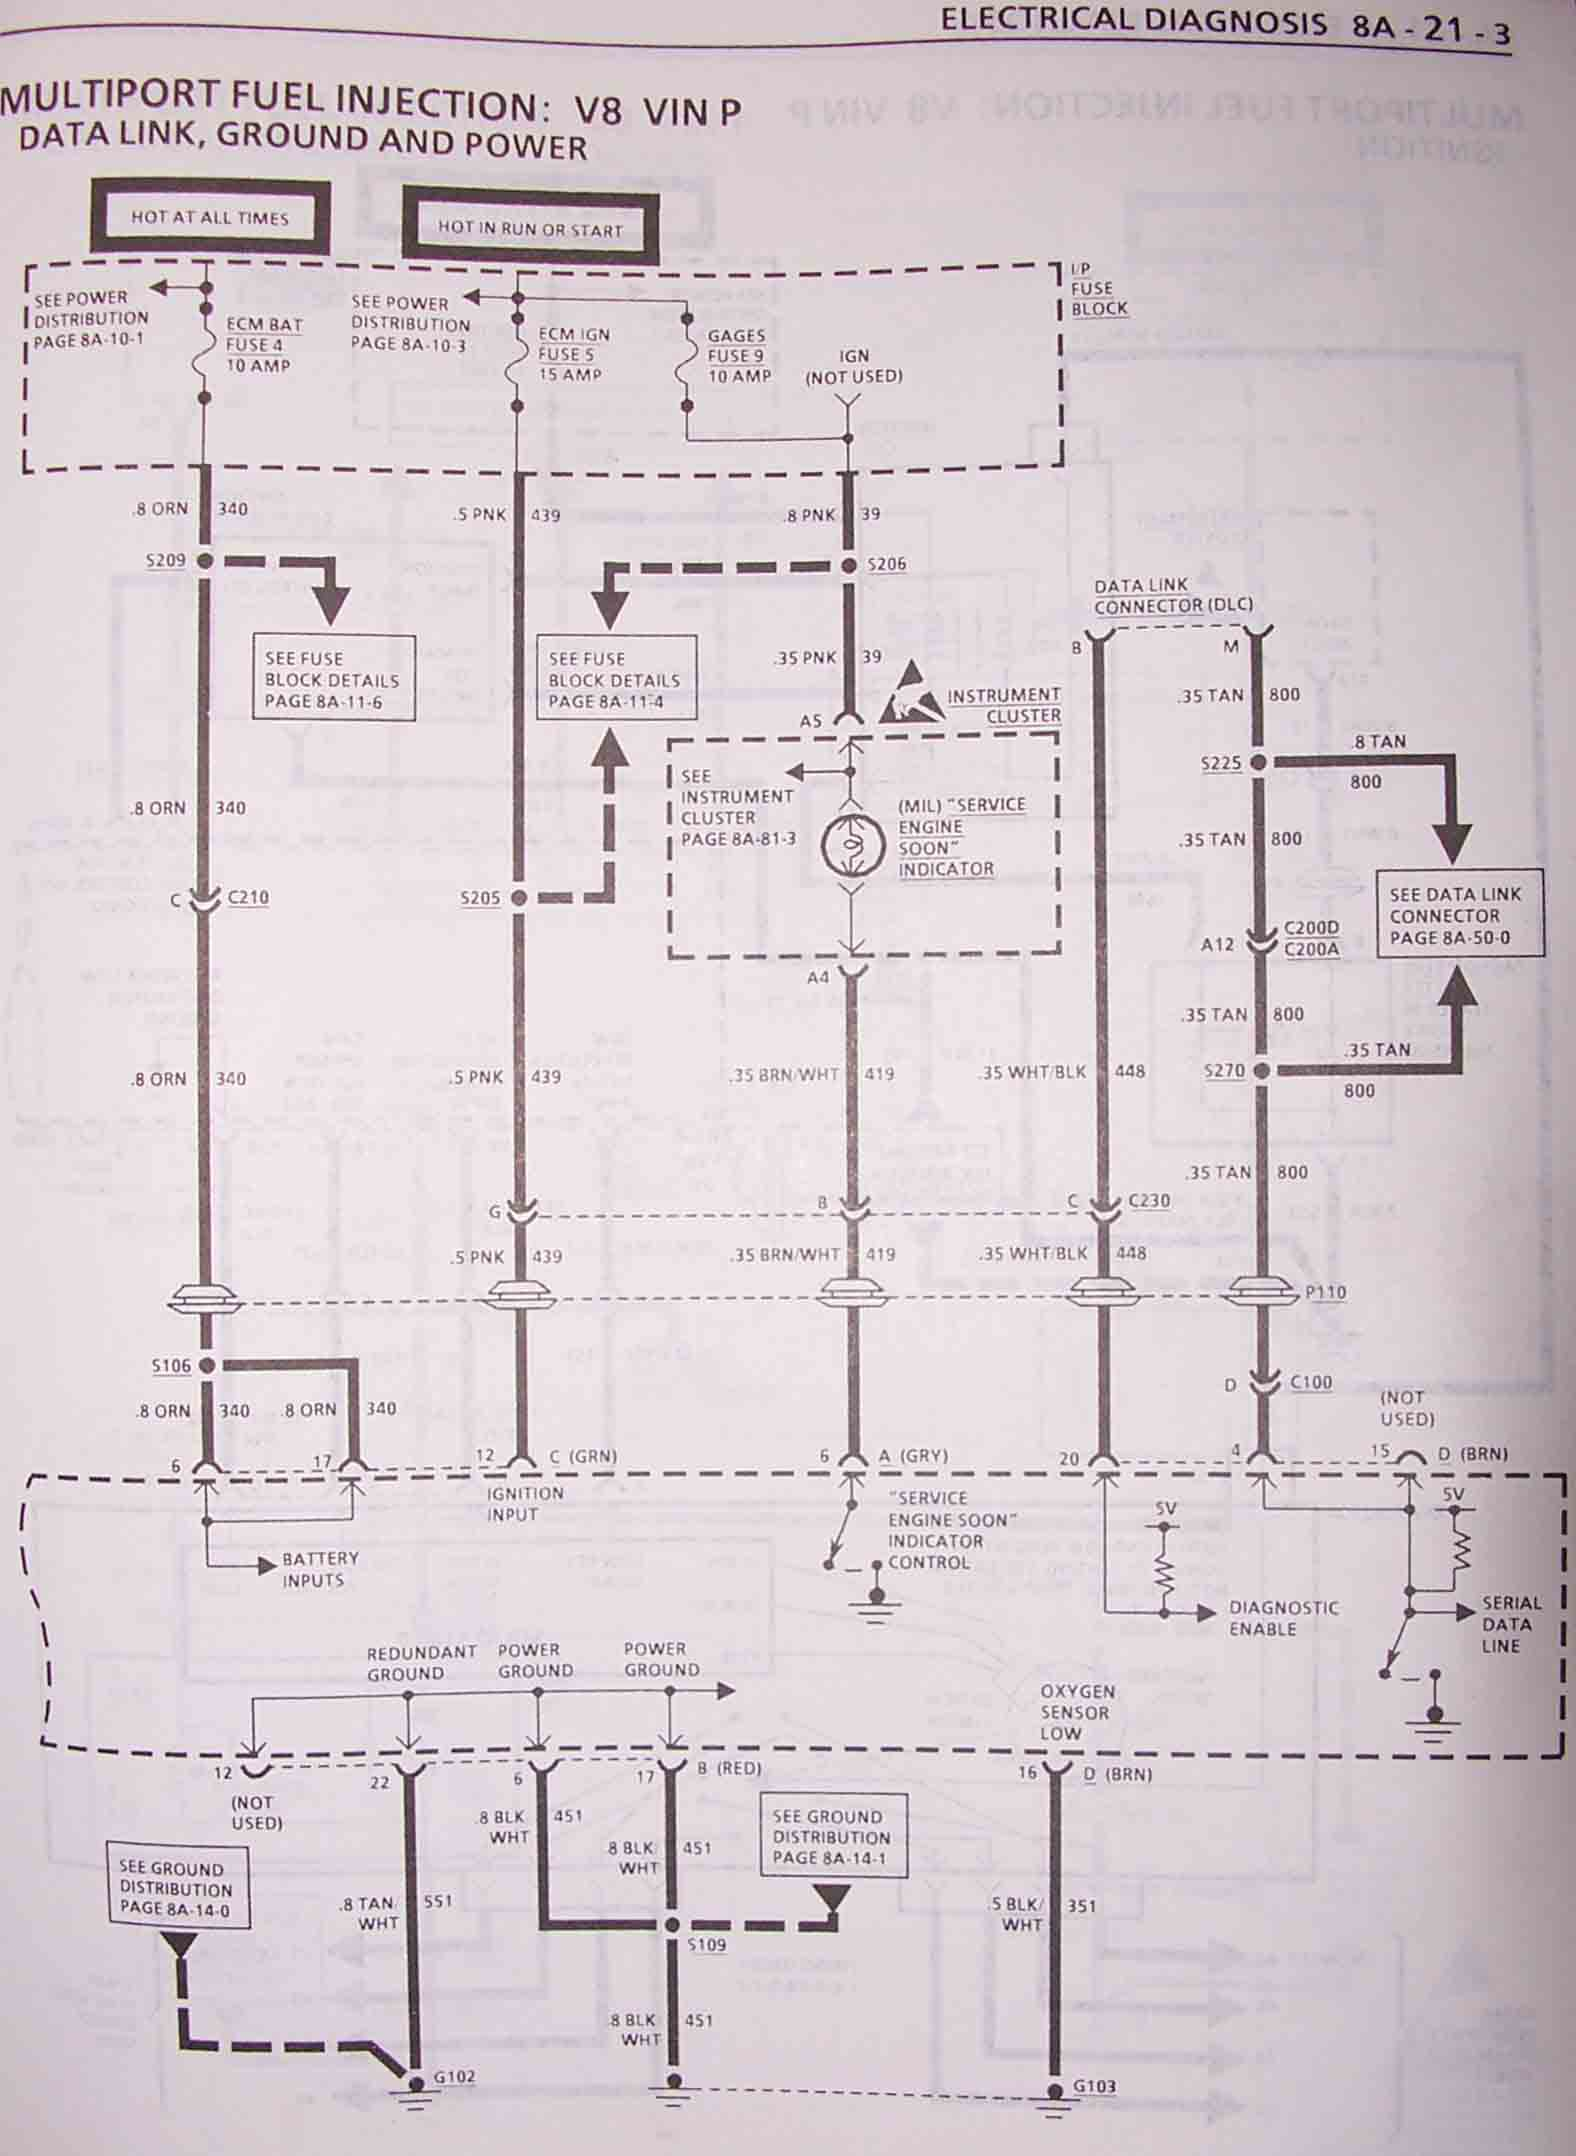 lt1 wiring diagram general electric wall oven 1993 camaro harness information dlc ground power